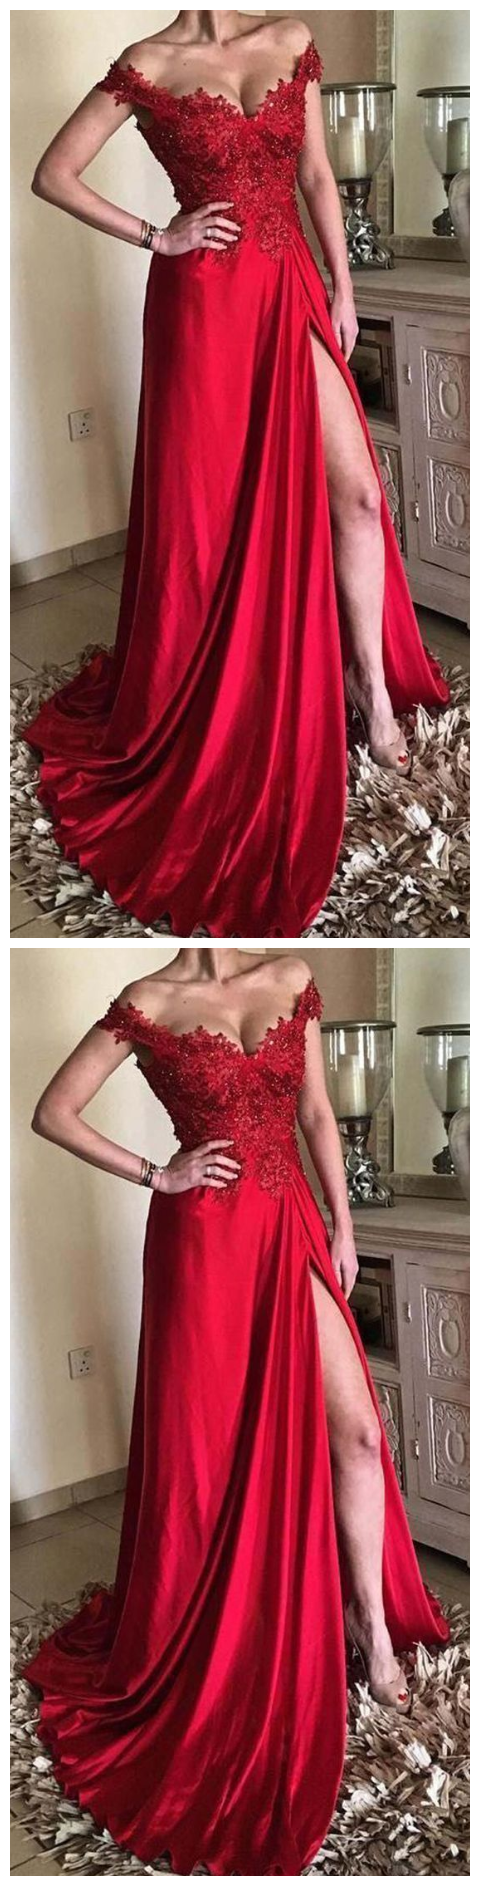 Off The Shoulder Prom Dress Long Red Prom Dress Prom Dress With Sleeves In 2021 Dresses Prom Dresses With Sleeves Red Prom Dress [ 1886 x 480 Pixel ]